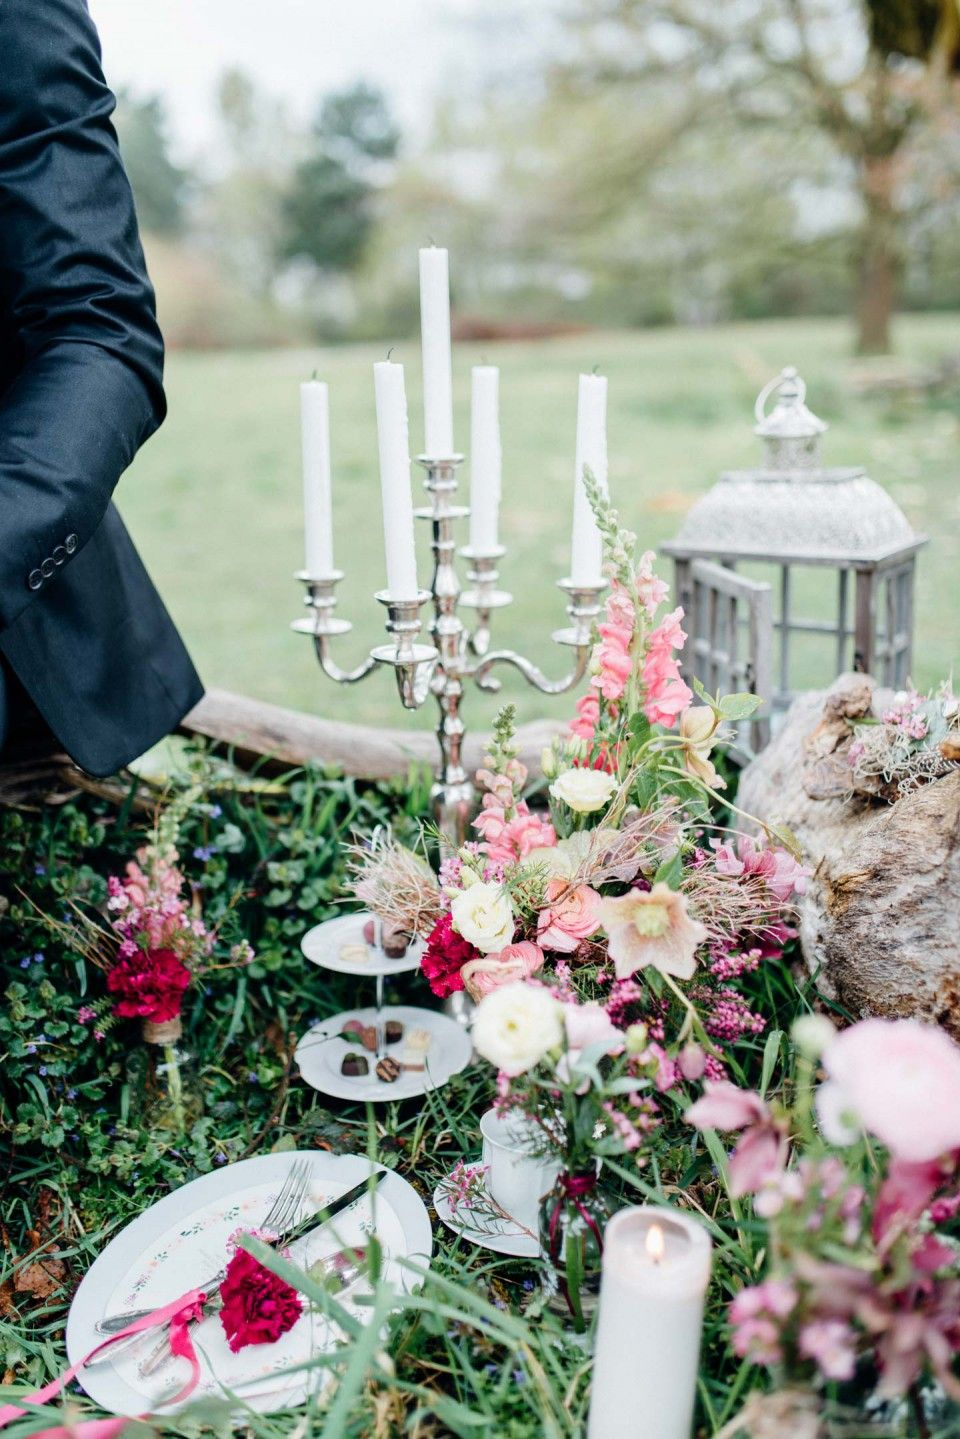 Bohemian Magie Hochzeitstraume In Pink Wedding Table Decor